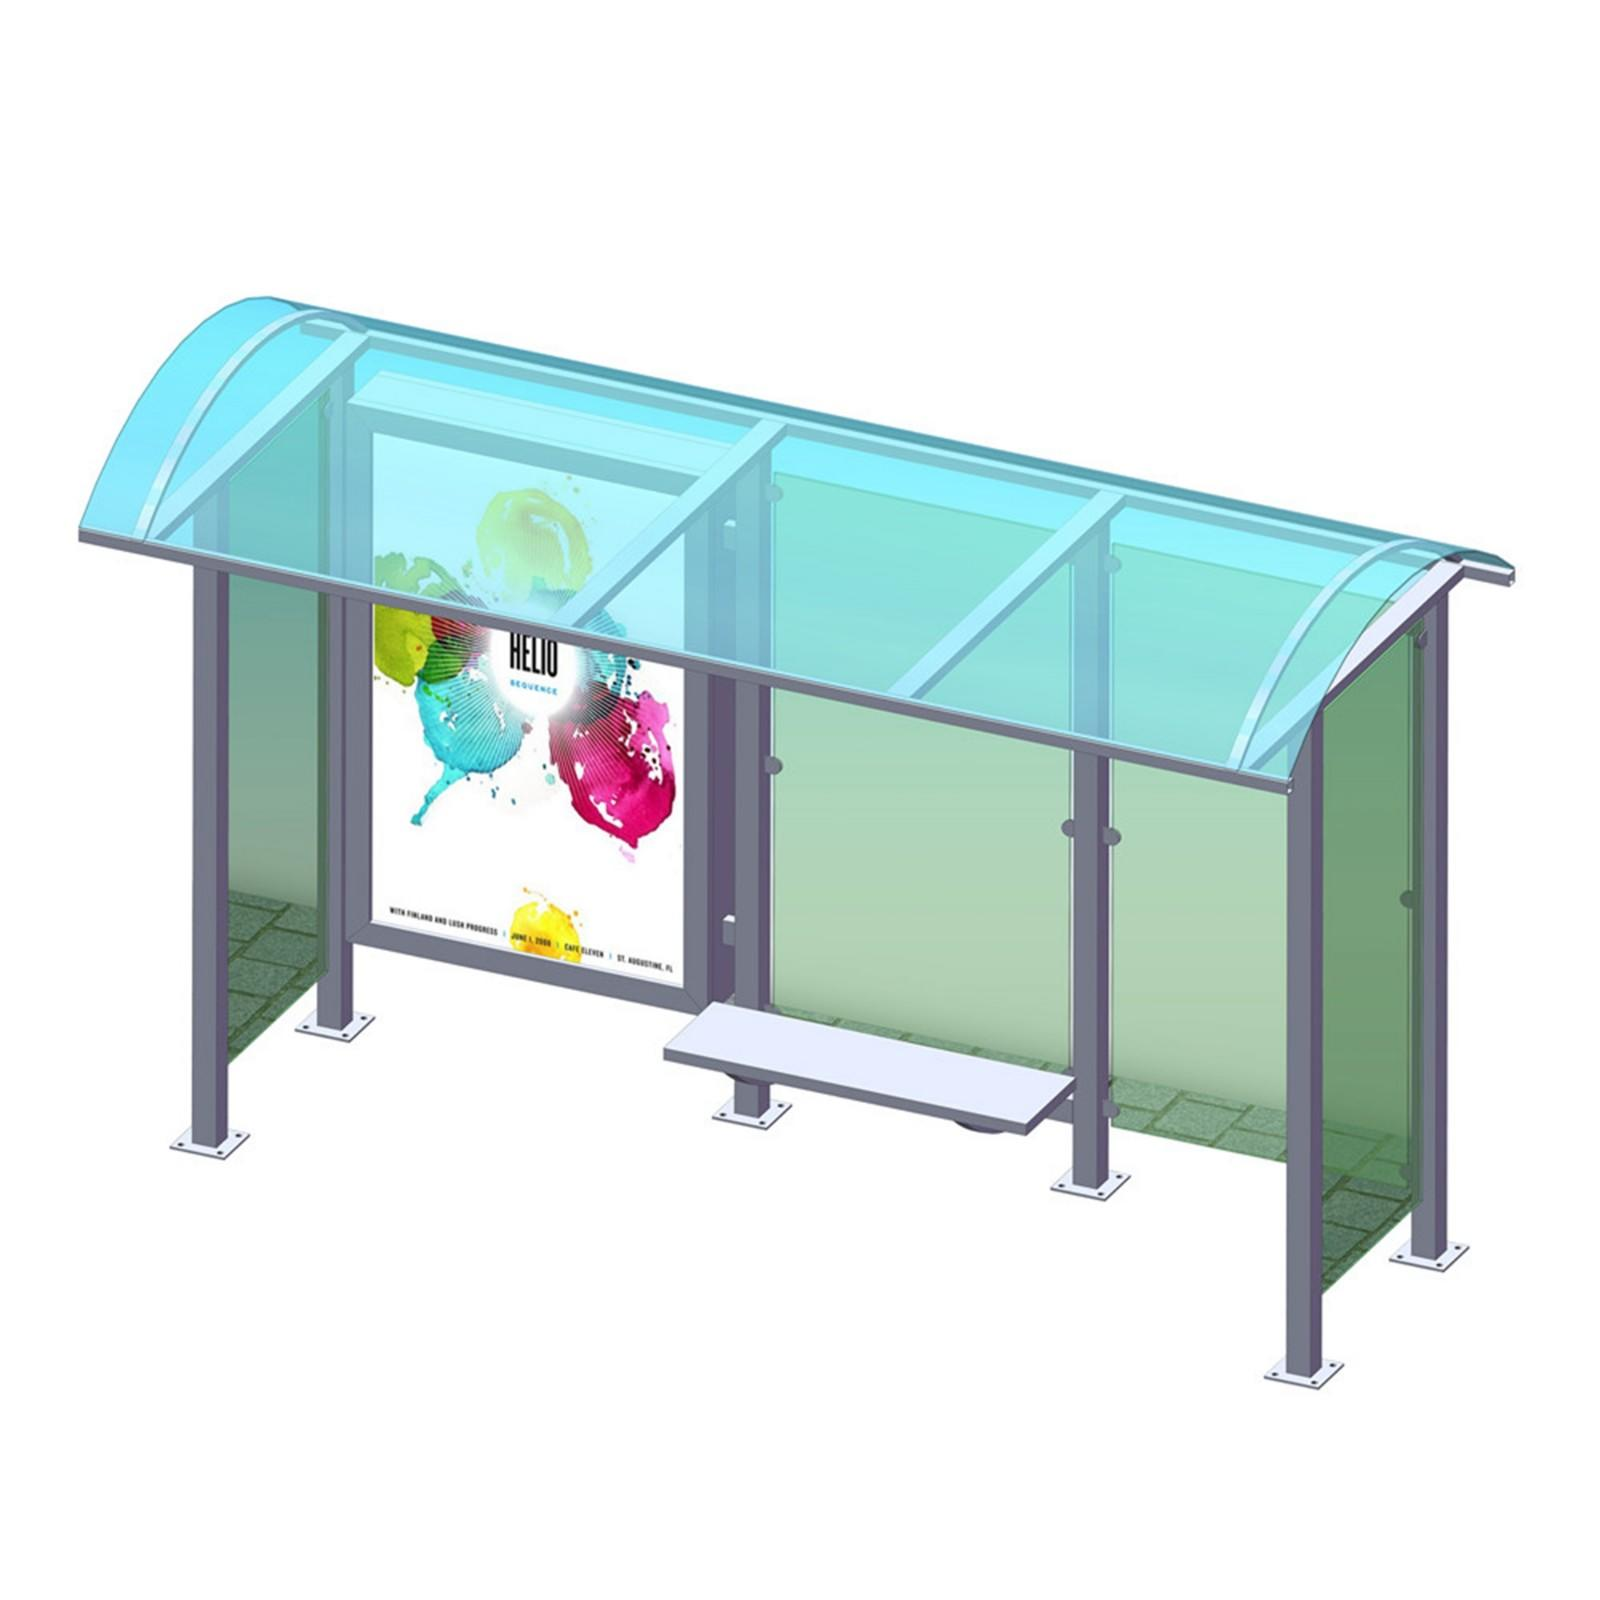 YEROO bus stop shed buy now for station-1